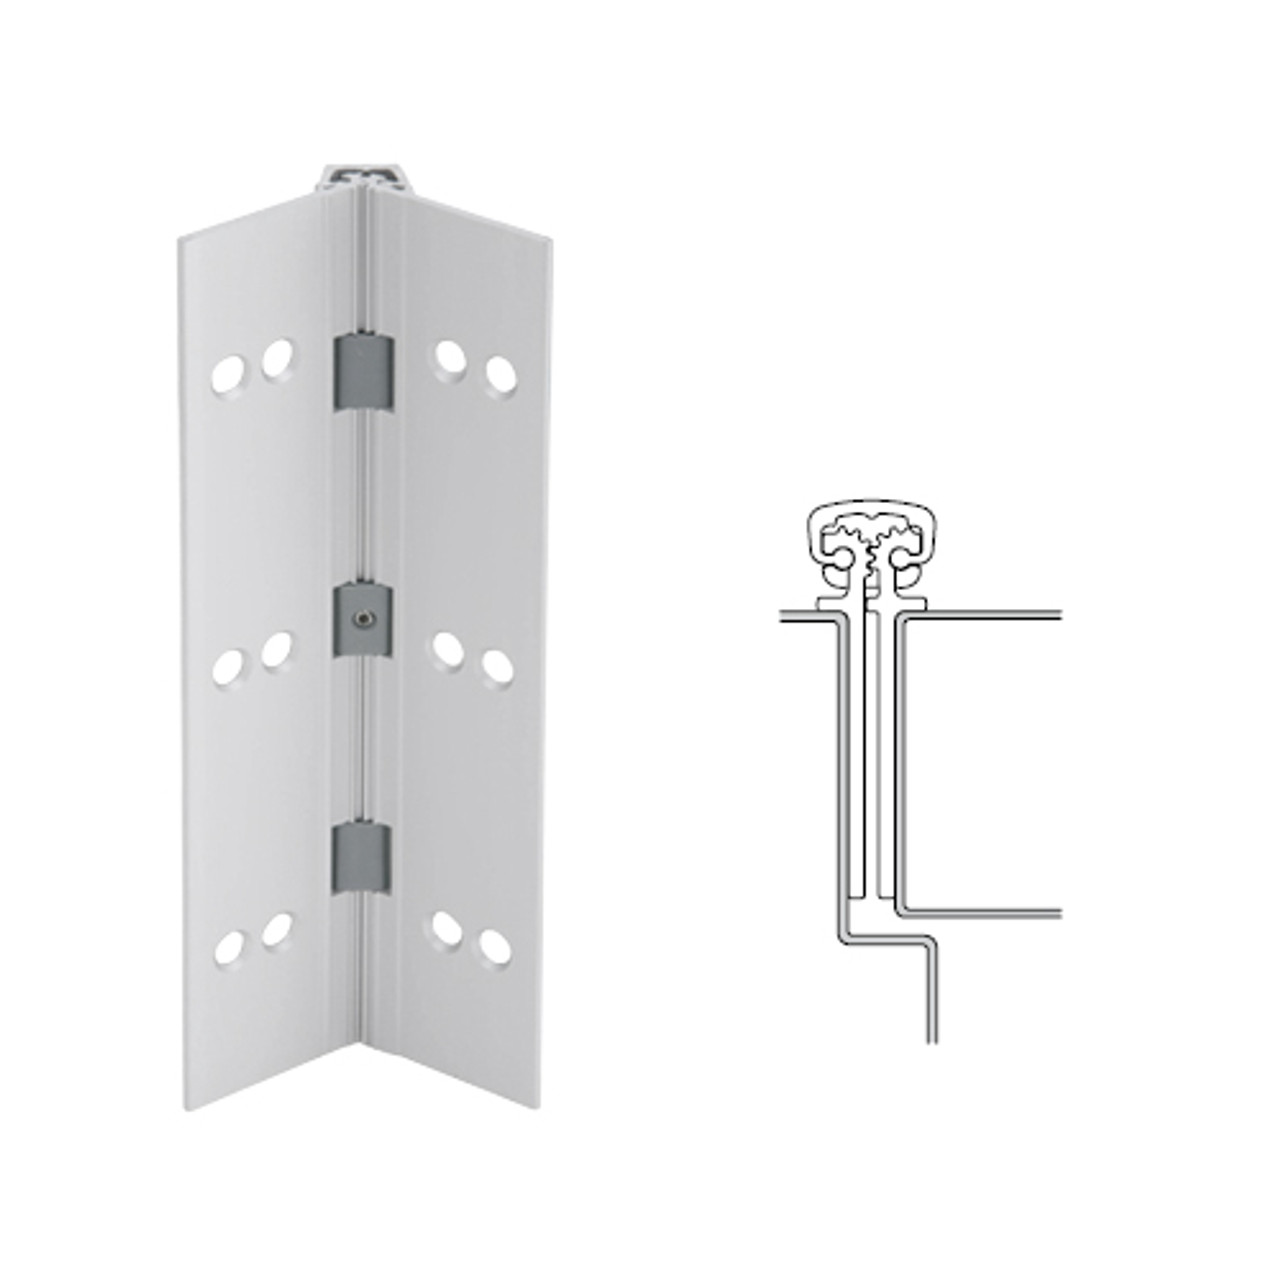 027XY-US28-120-WD IVES Full Mortise Continuous Geared Hinges with Wood Screws in Satin Aluminum